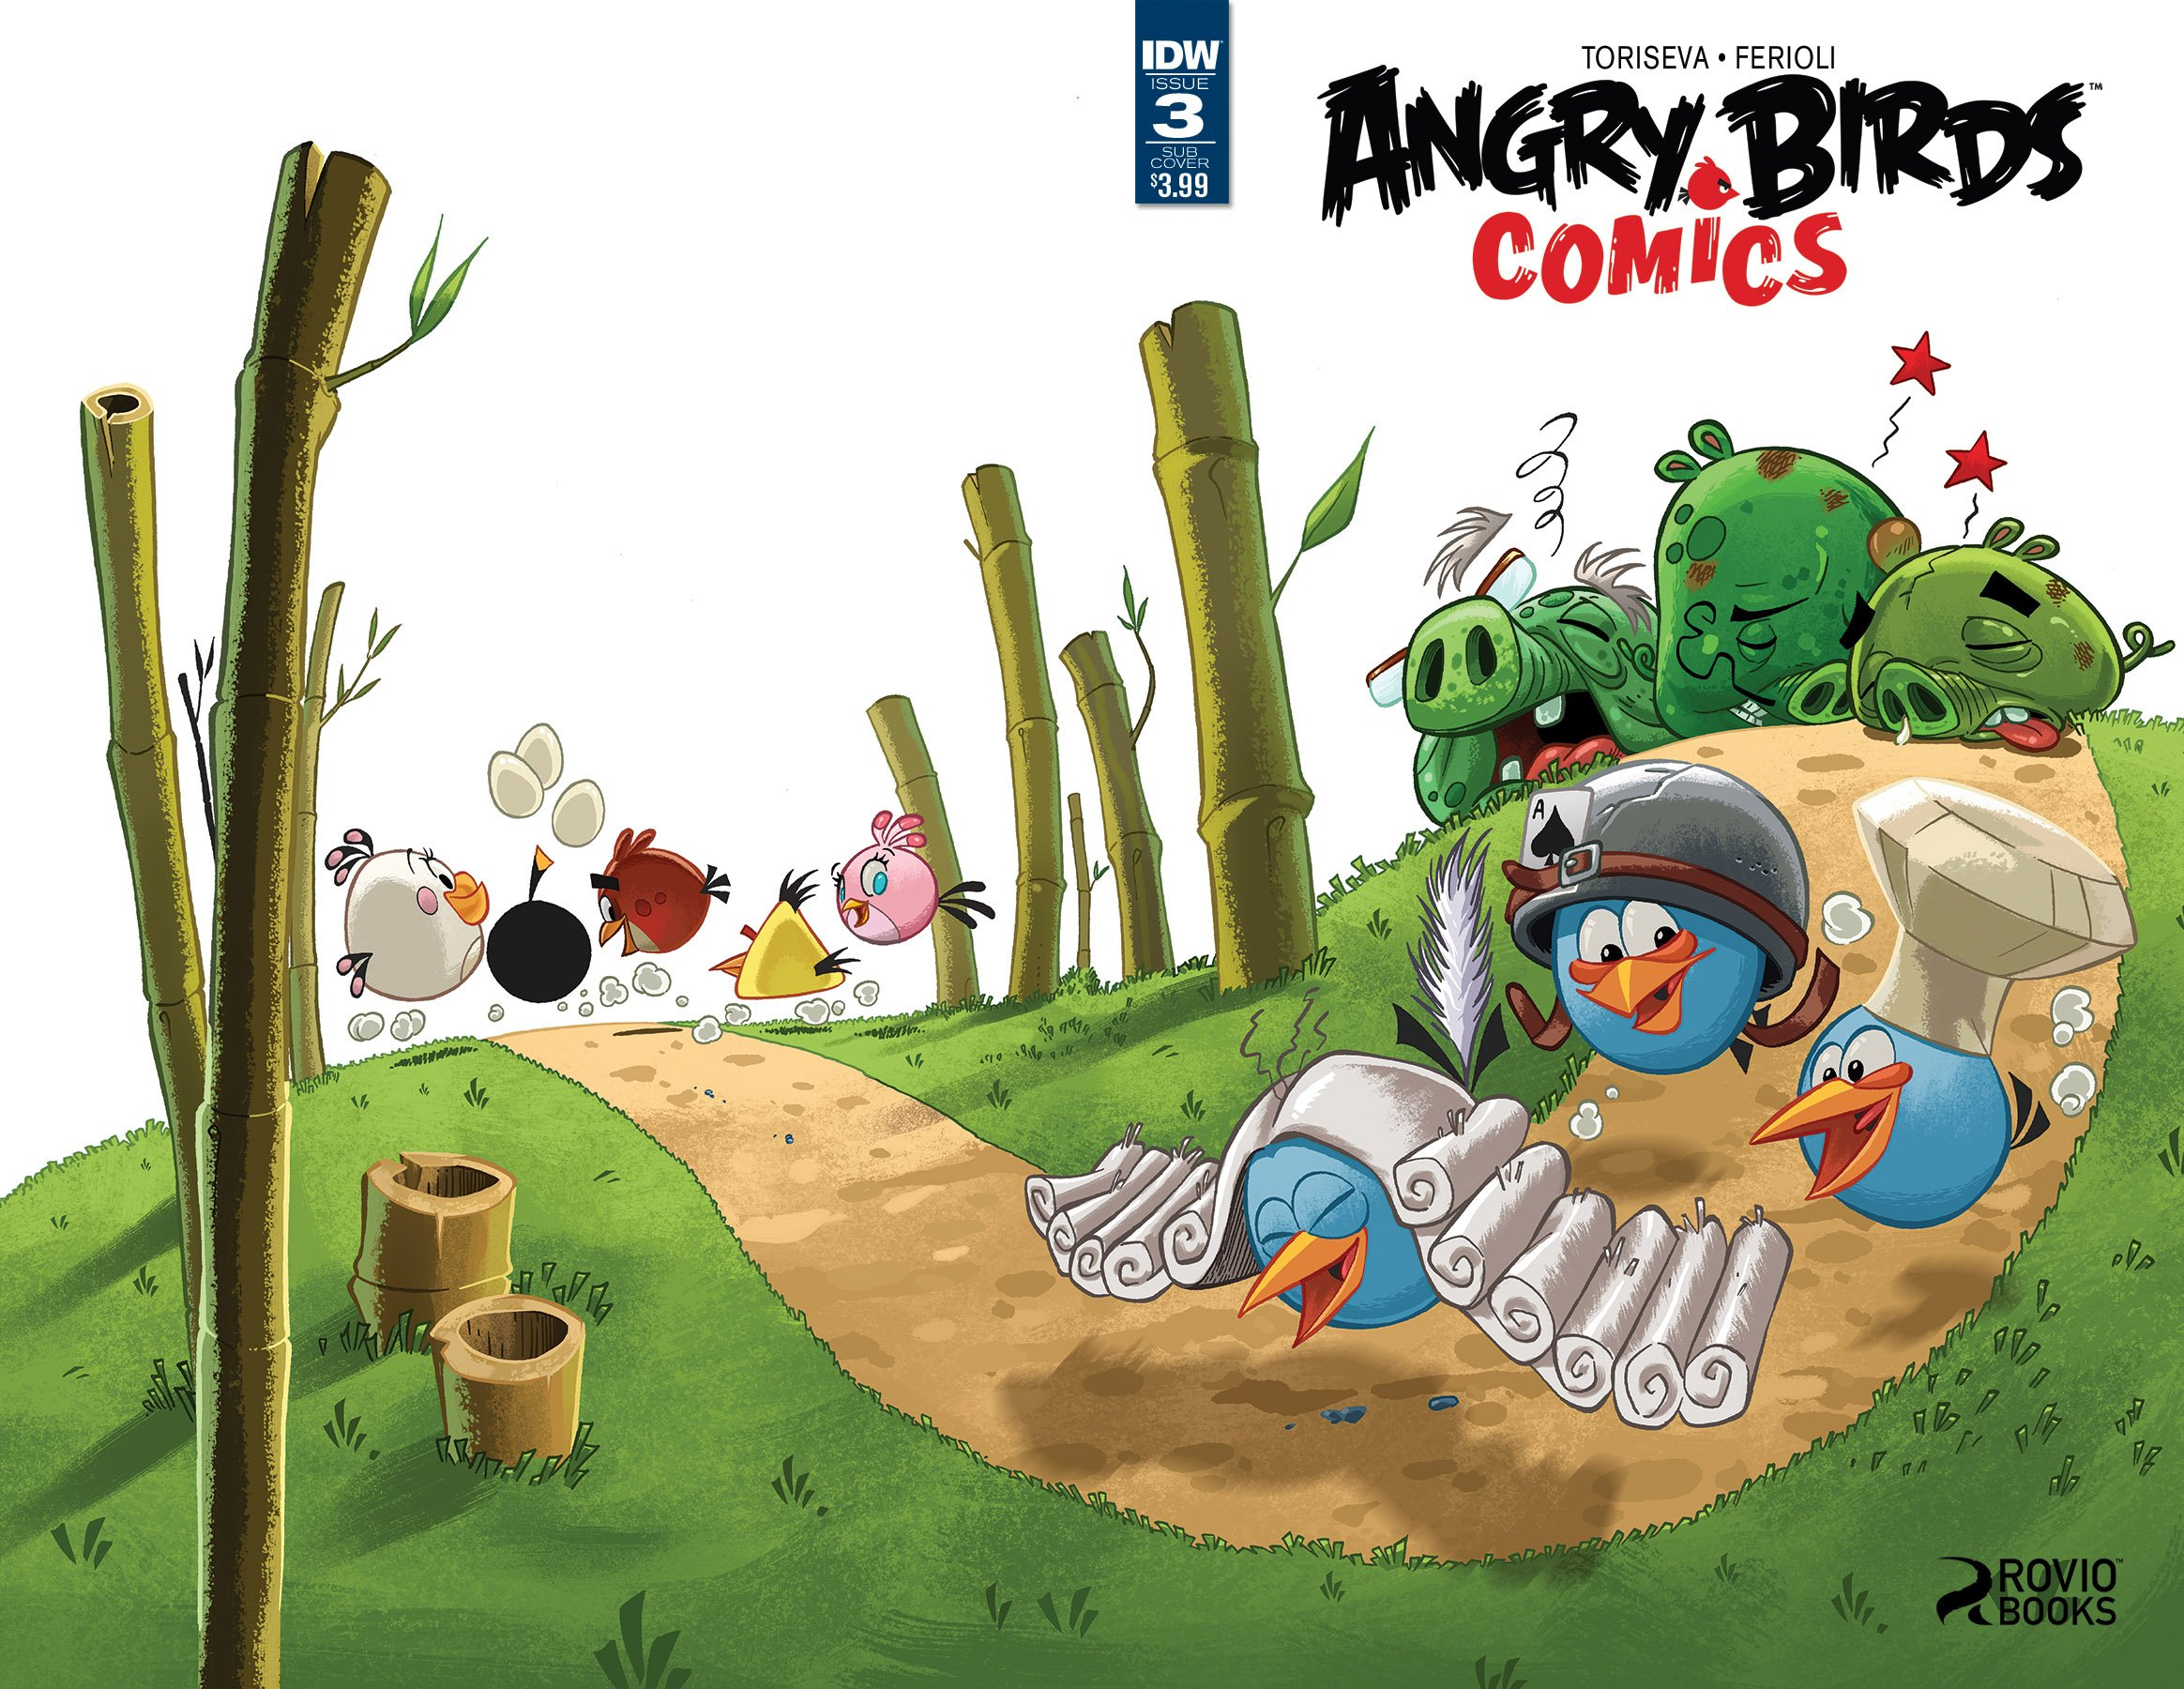 Angry Birds Comics Vol.2 003 (March 2016) (subscriber cover)